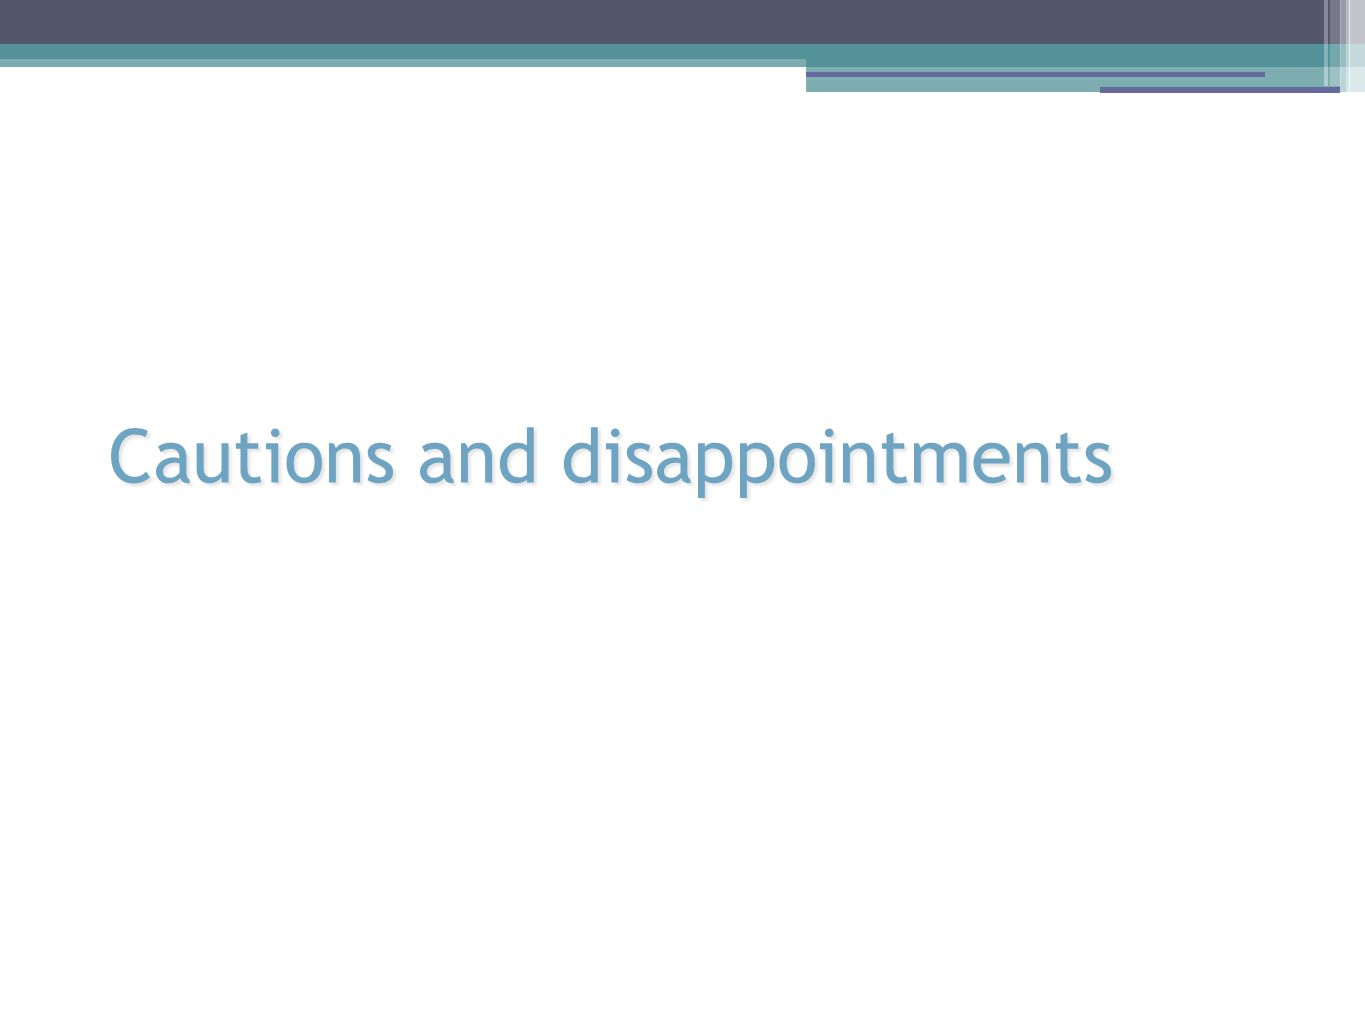 Cautions and disappointments